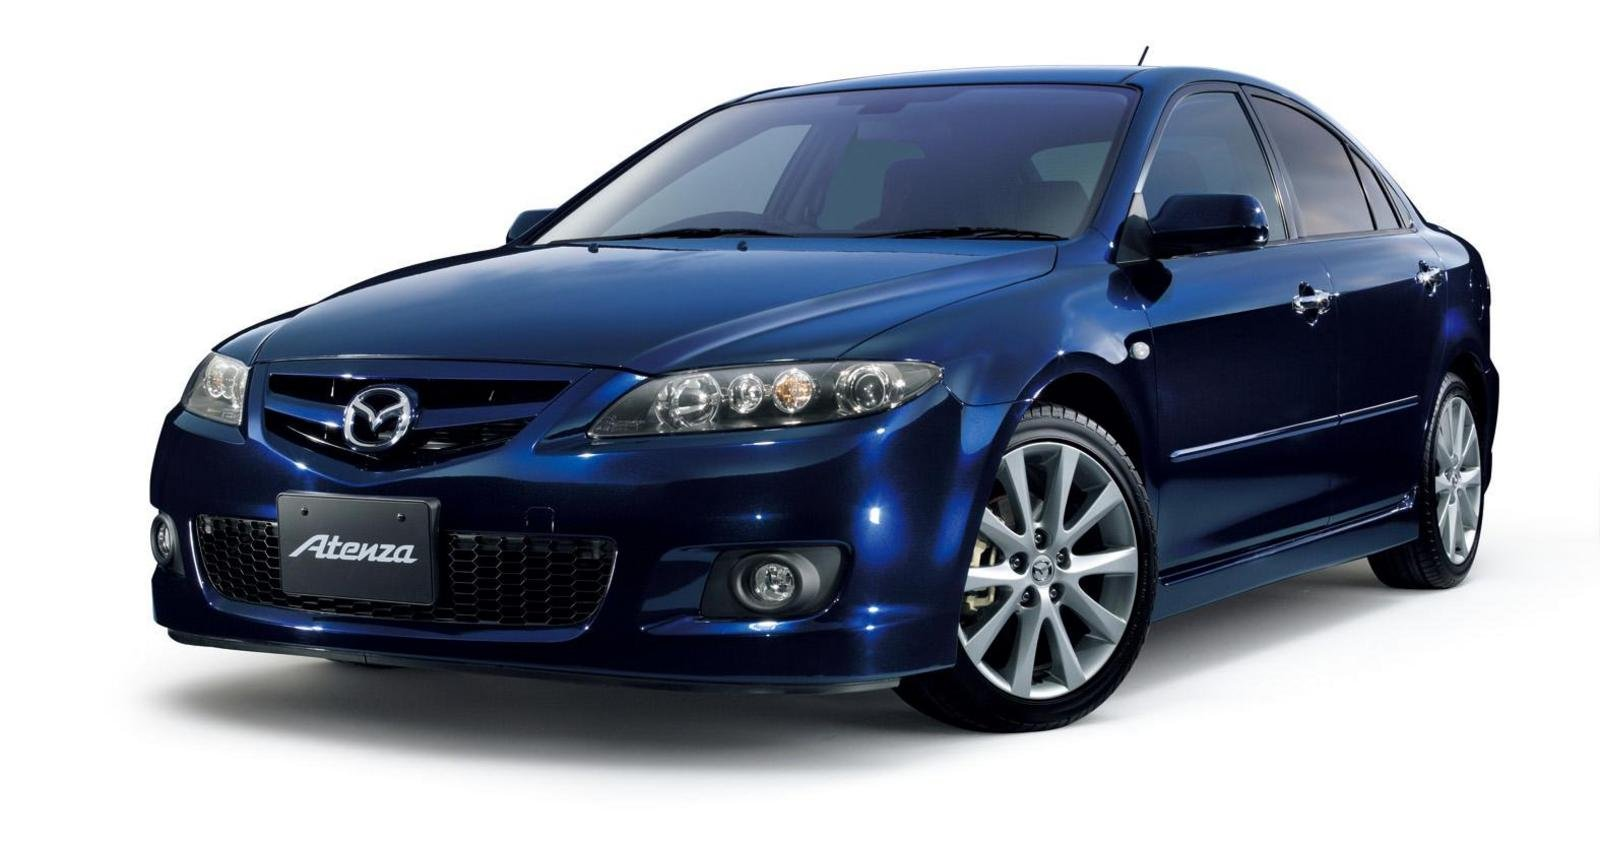 2007 mazda atenza sport review top speed. Black Bedroom Furniture Sets. Home Design Ideas